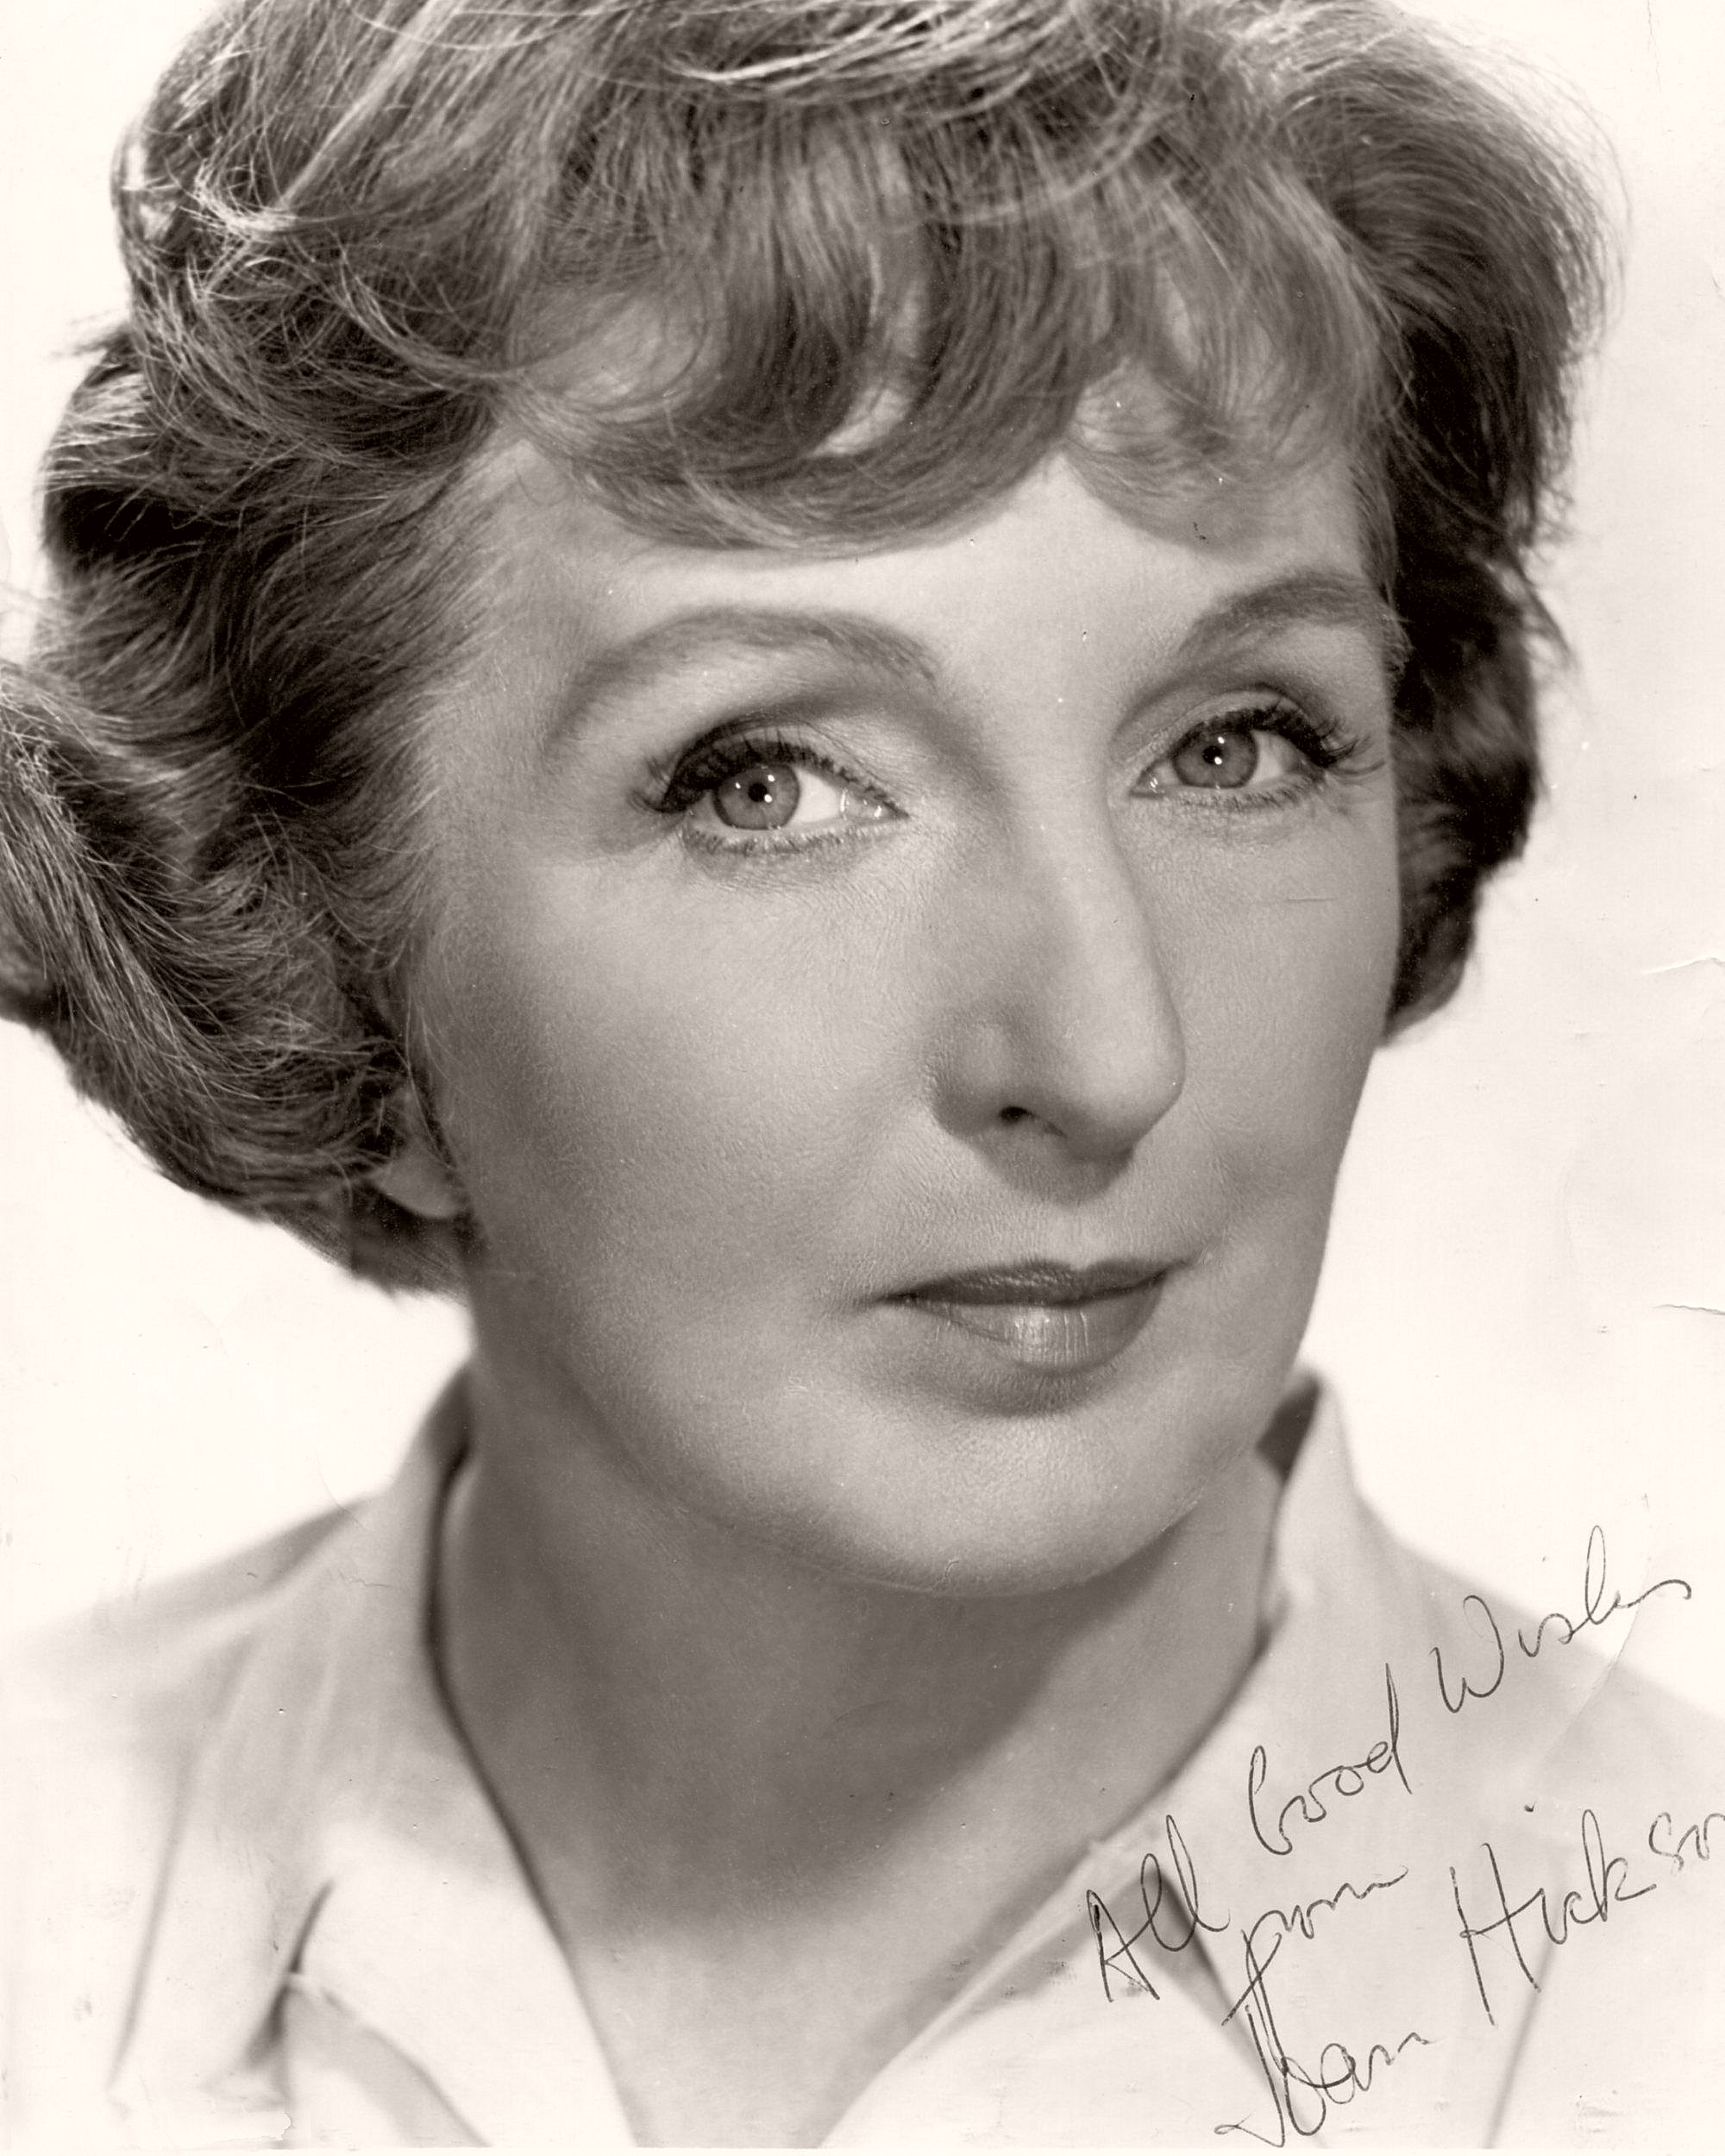 Signed photograph of English actress, Joan Hickson. Picture reads 'All good wishes, Joan Hickson'